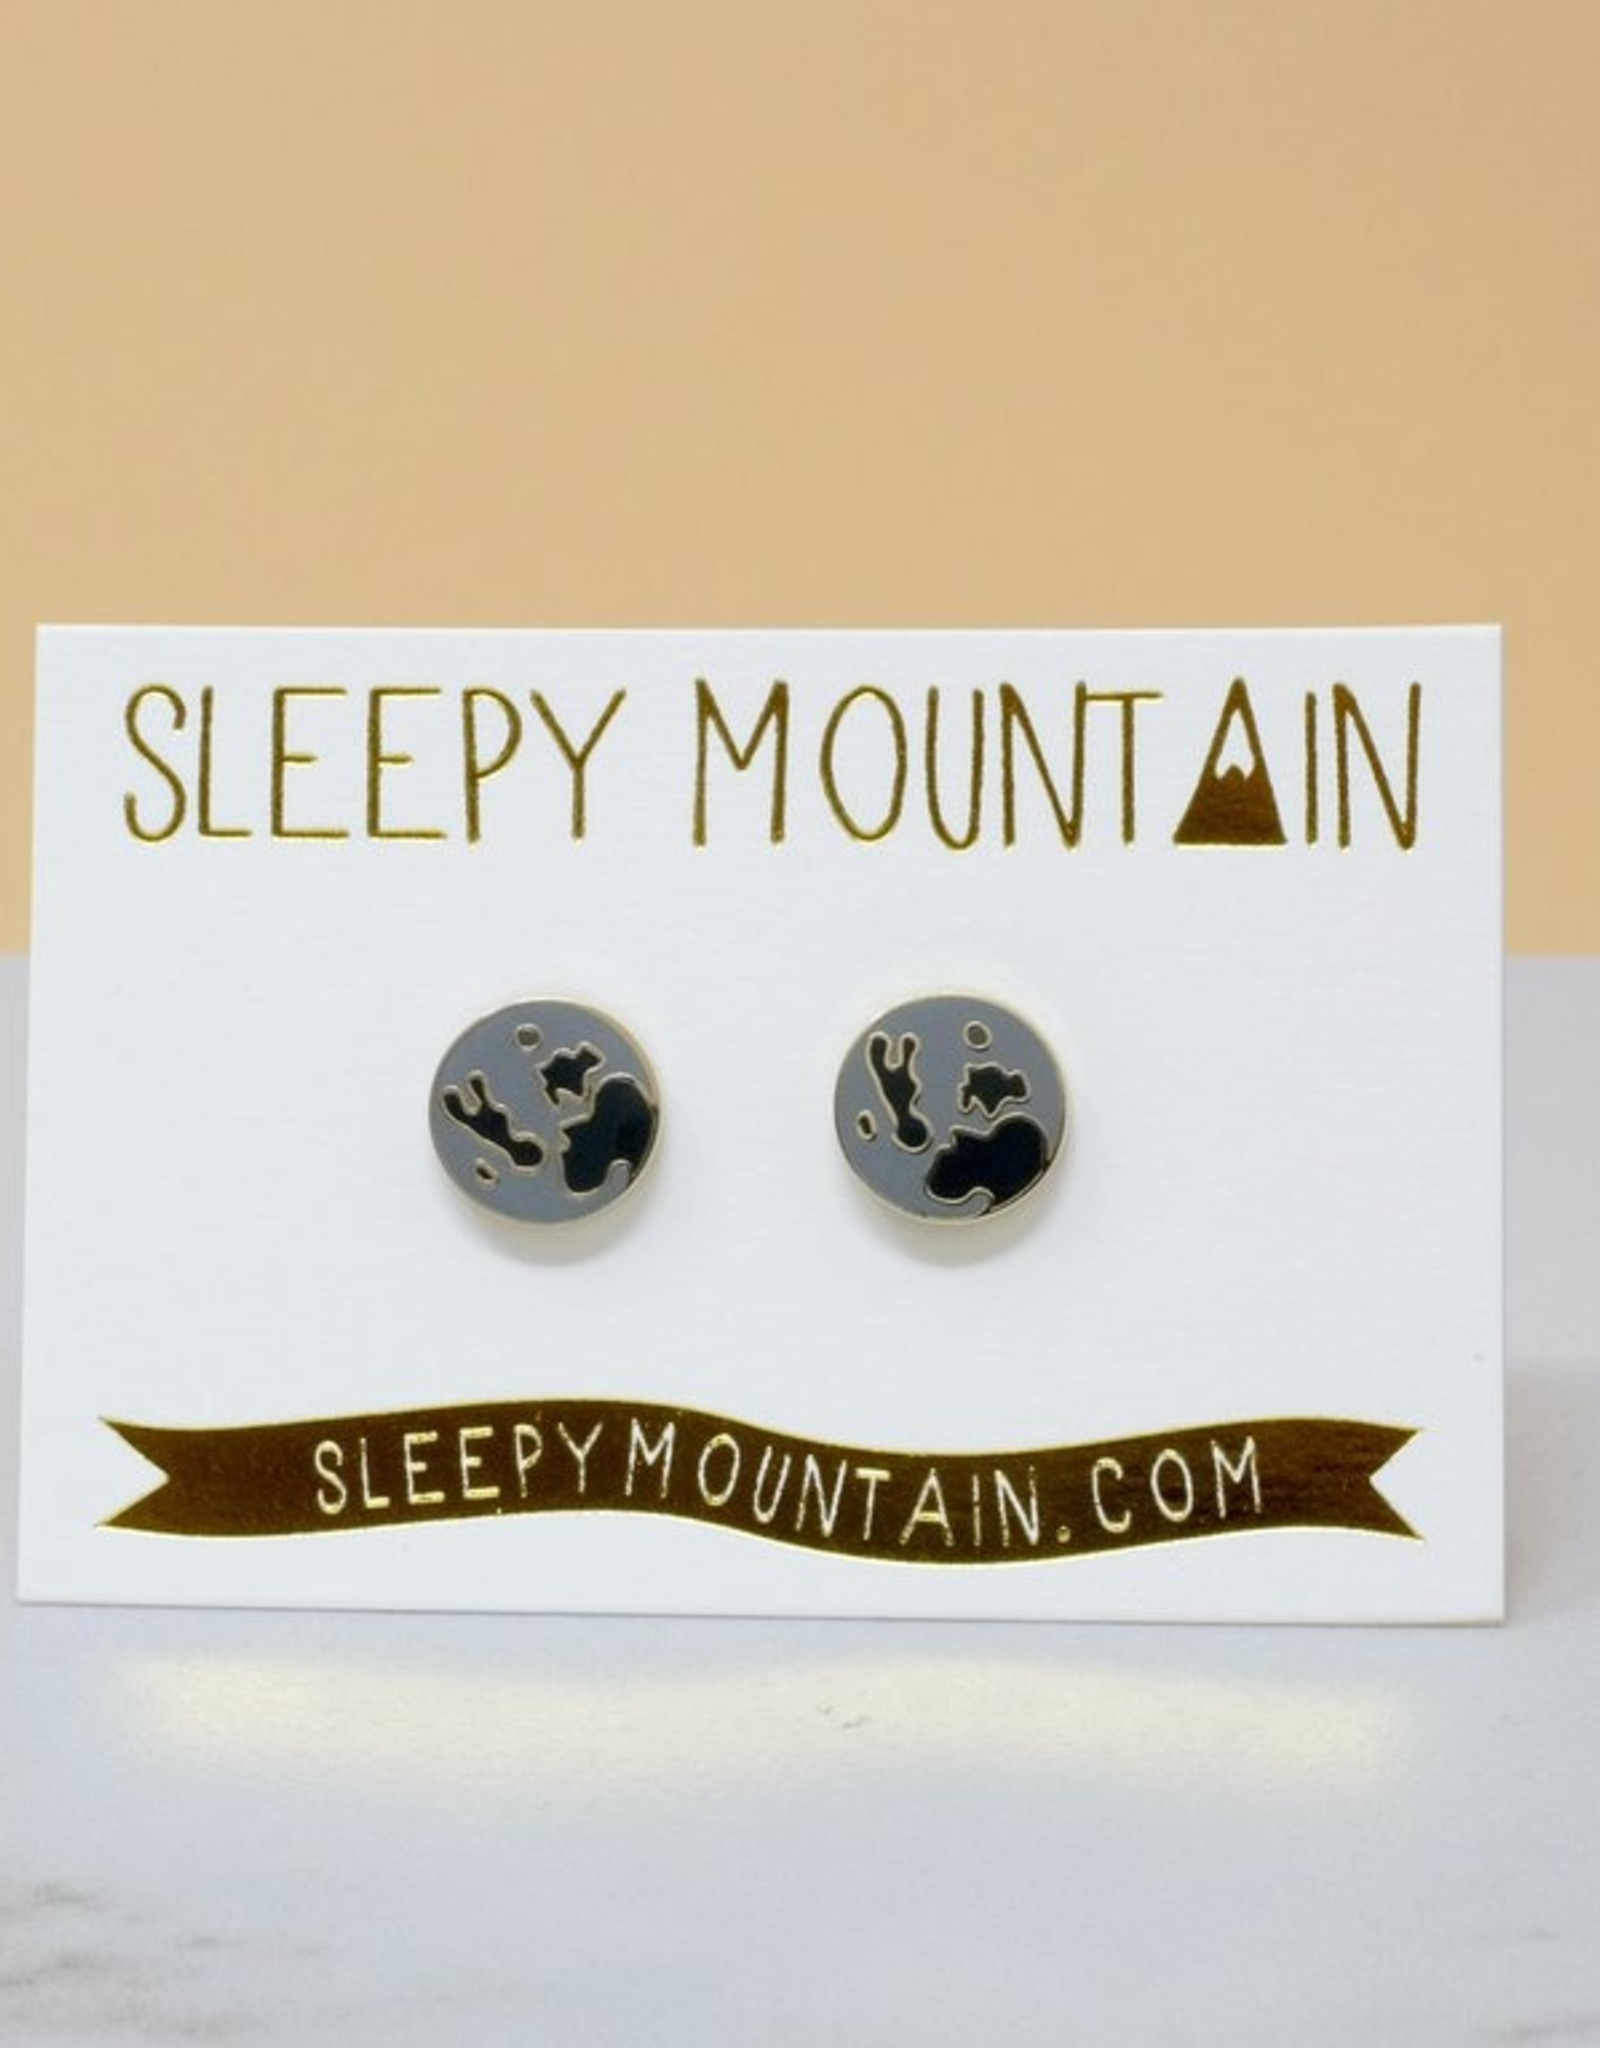 Sleepy Mountain Assorted Gold Plated Earrings by Sleepy Mountain // 2